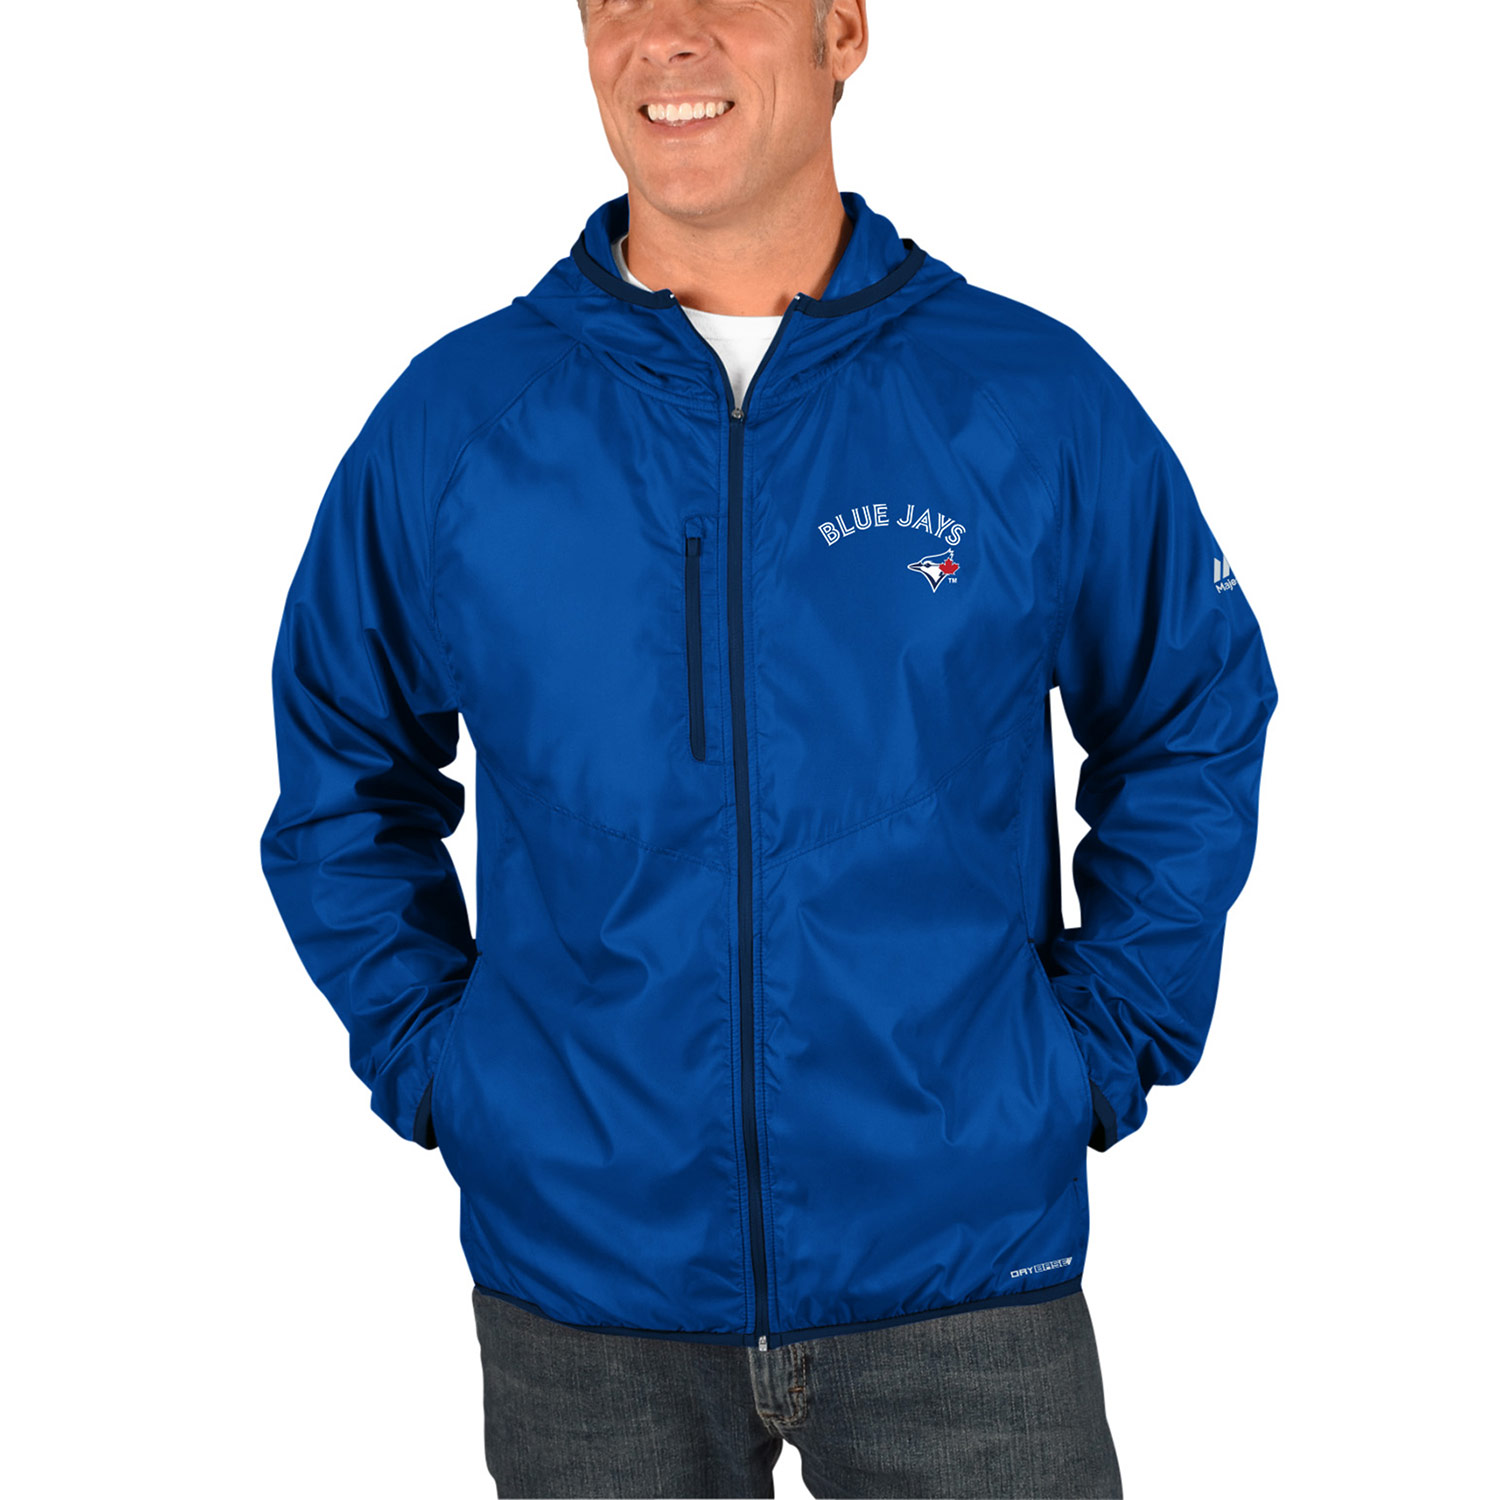 Toronto Blue Jays Majestic Strong Will Dry Base Full-Zip Hooded Jacket Royal by MAJESTIC LSG